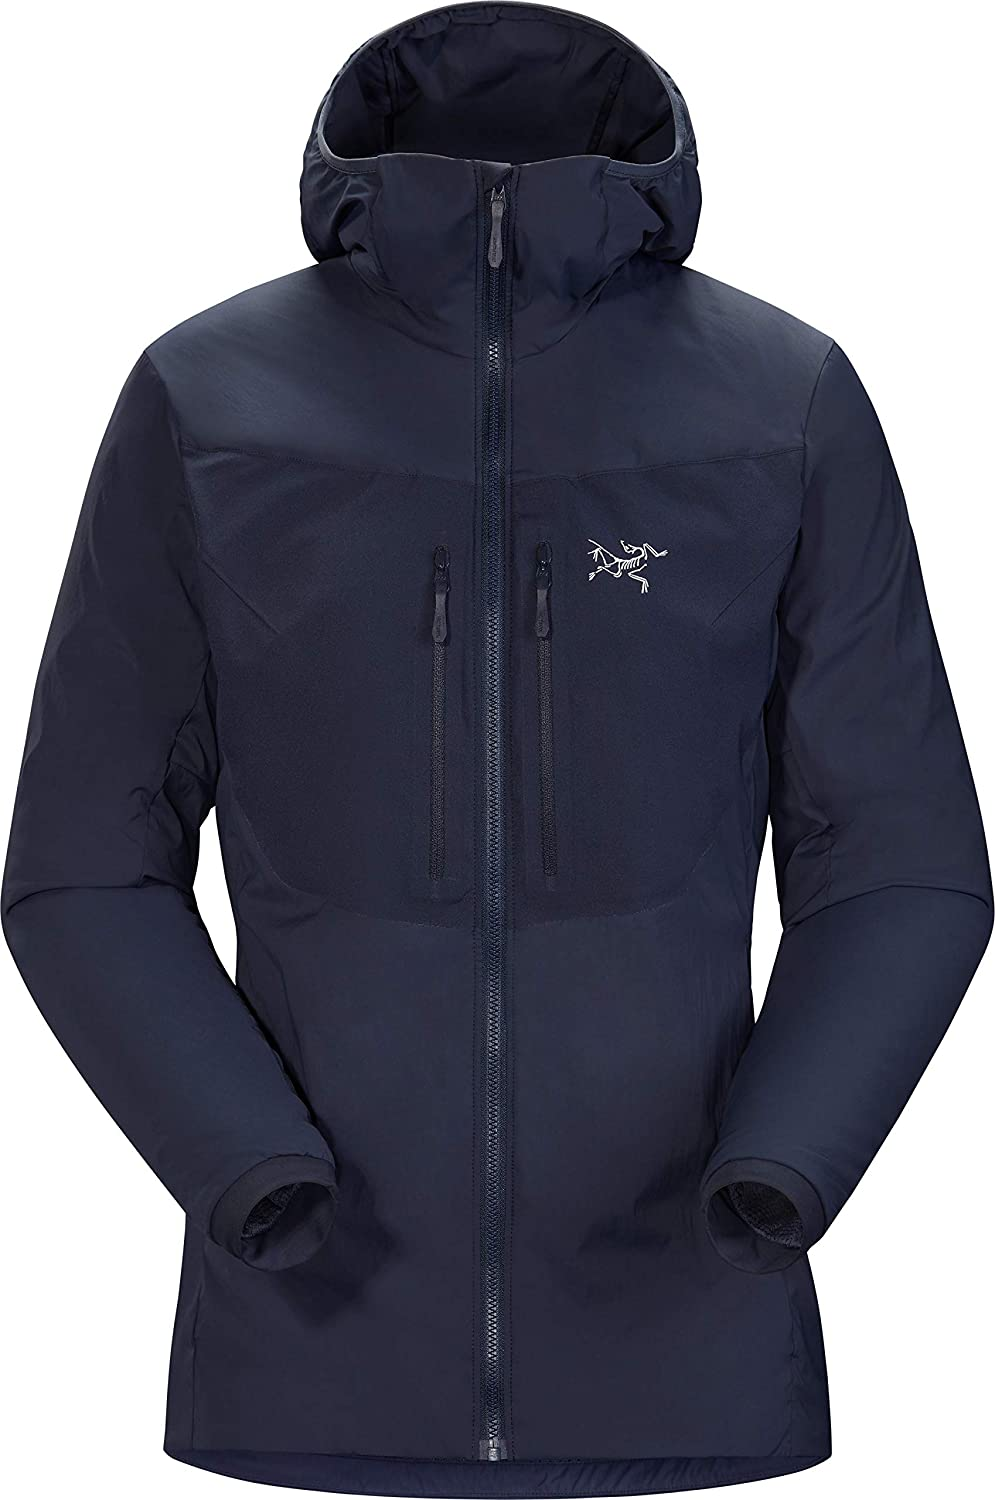 New Chicago Mall Manufacturer direct delivery Arc'teryx Proton FL Hoody Climbing Jacke Women's Insulated